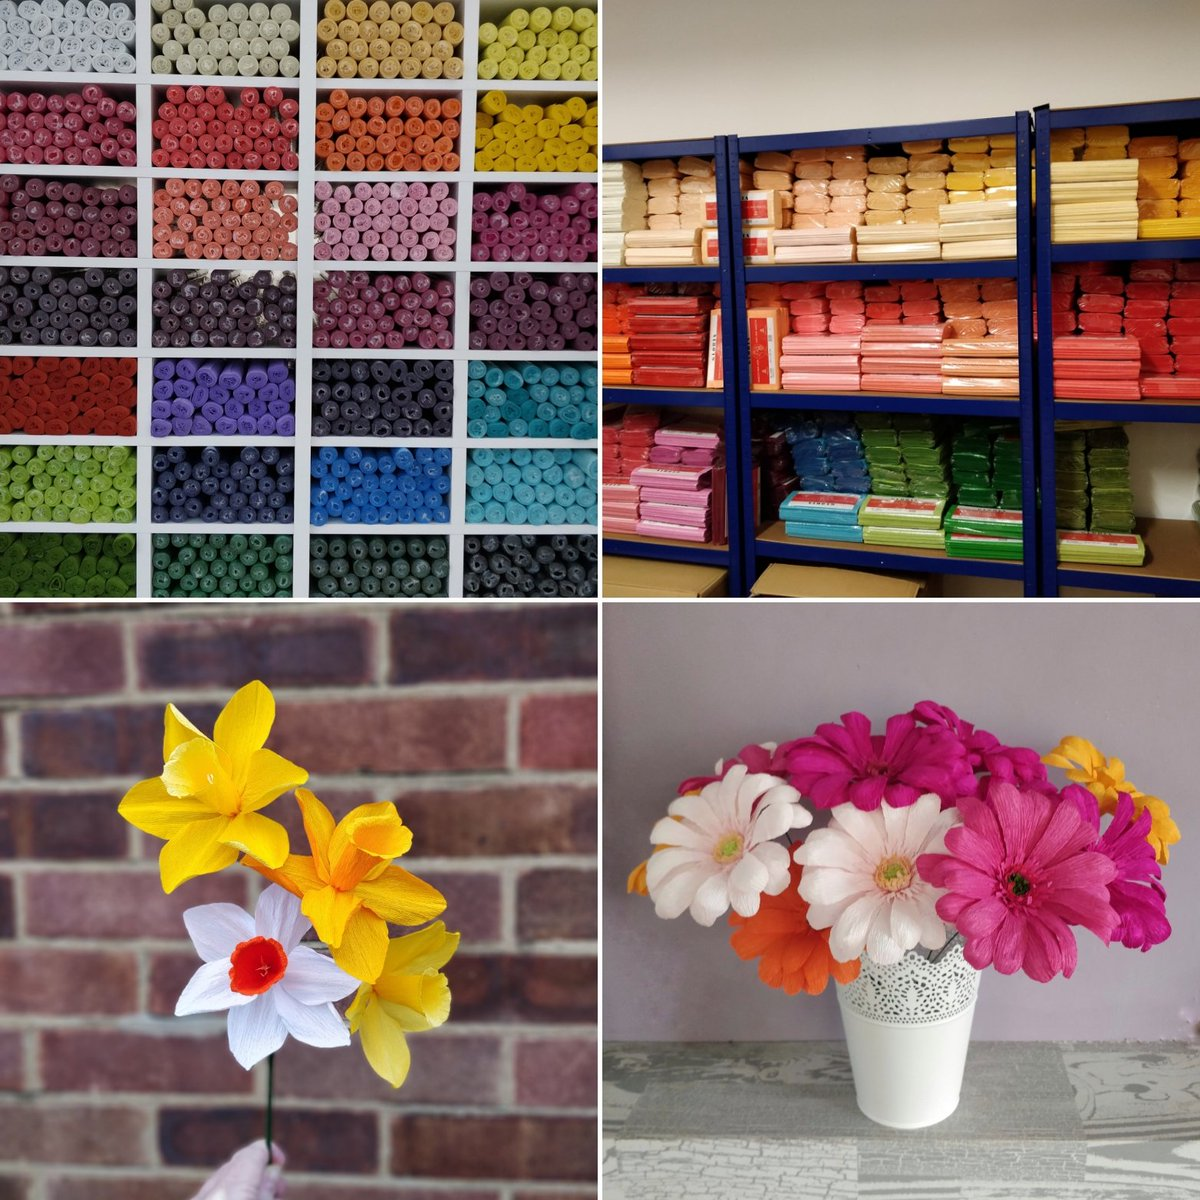 In need of crepe paper? I&#39;ve got you covered... Shelves are now fully stocked with florist heavy crepe and doublette crepe paper, and there&#39;s plenty of colours   #Bedford #paperflorist #crepepaper #paperflowers #ShopLocal #SmallBiz #SmallBusiness #crafts<br>http://pic.twitter.com/ueqHZzNlBN